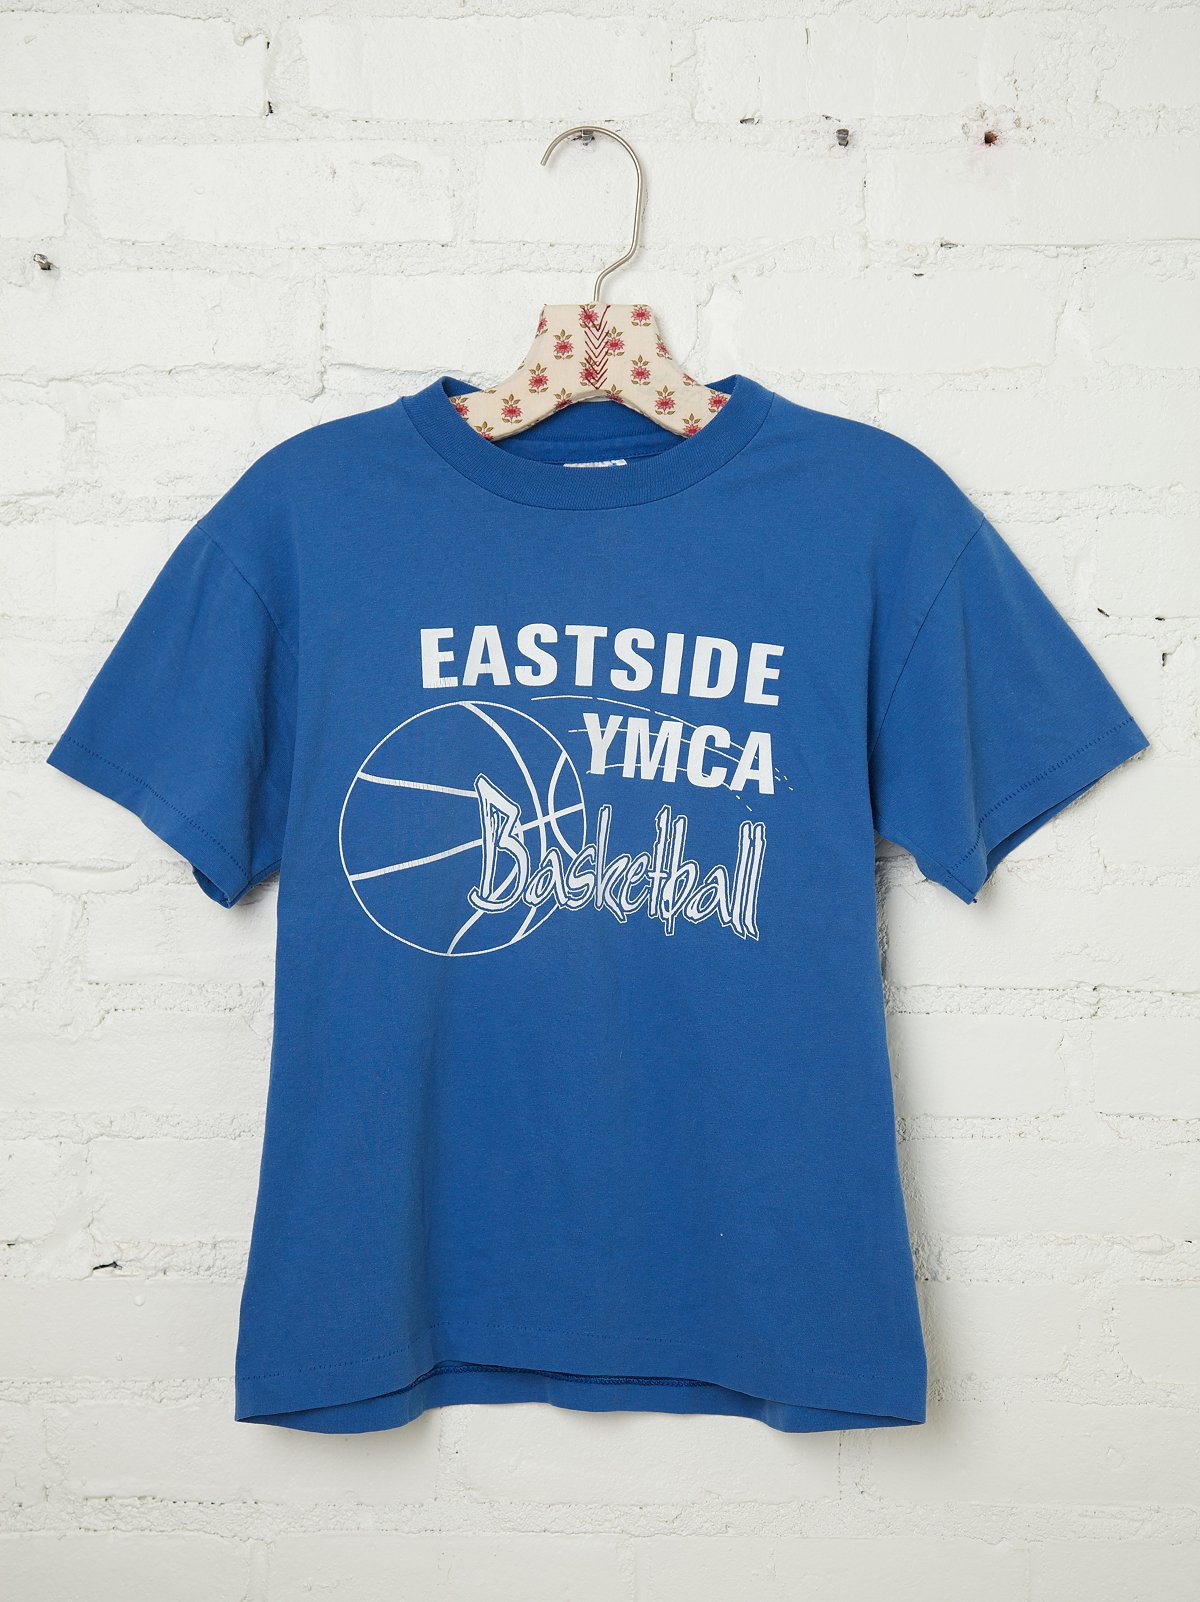 Vintage Eastside YMCA Tee